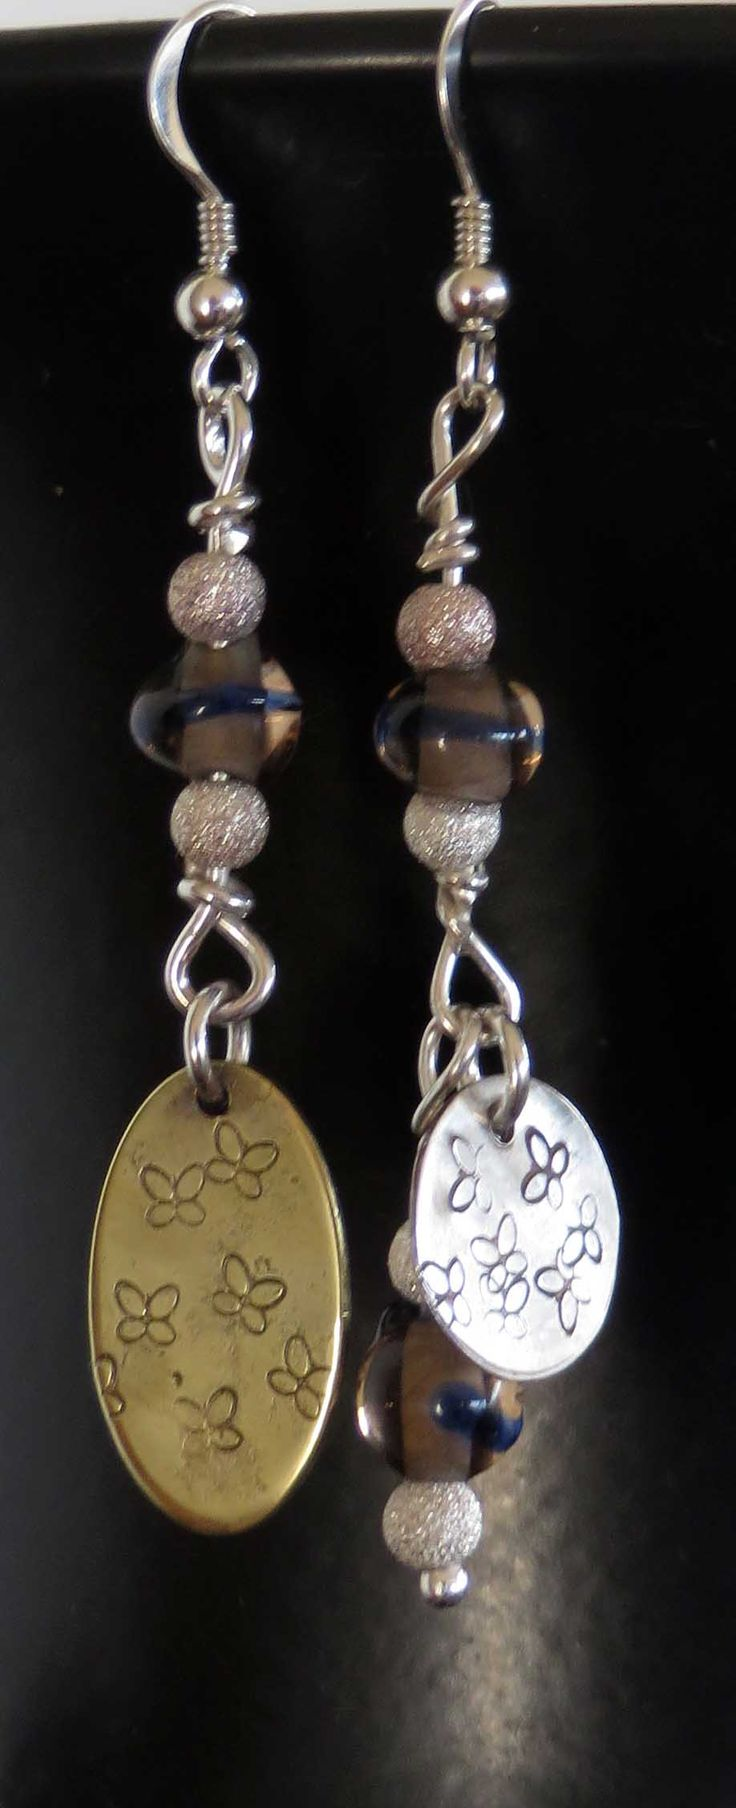 Another pair of asymetrical earrings - silver, brass, hand-wound glass beads.